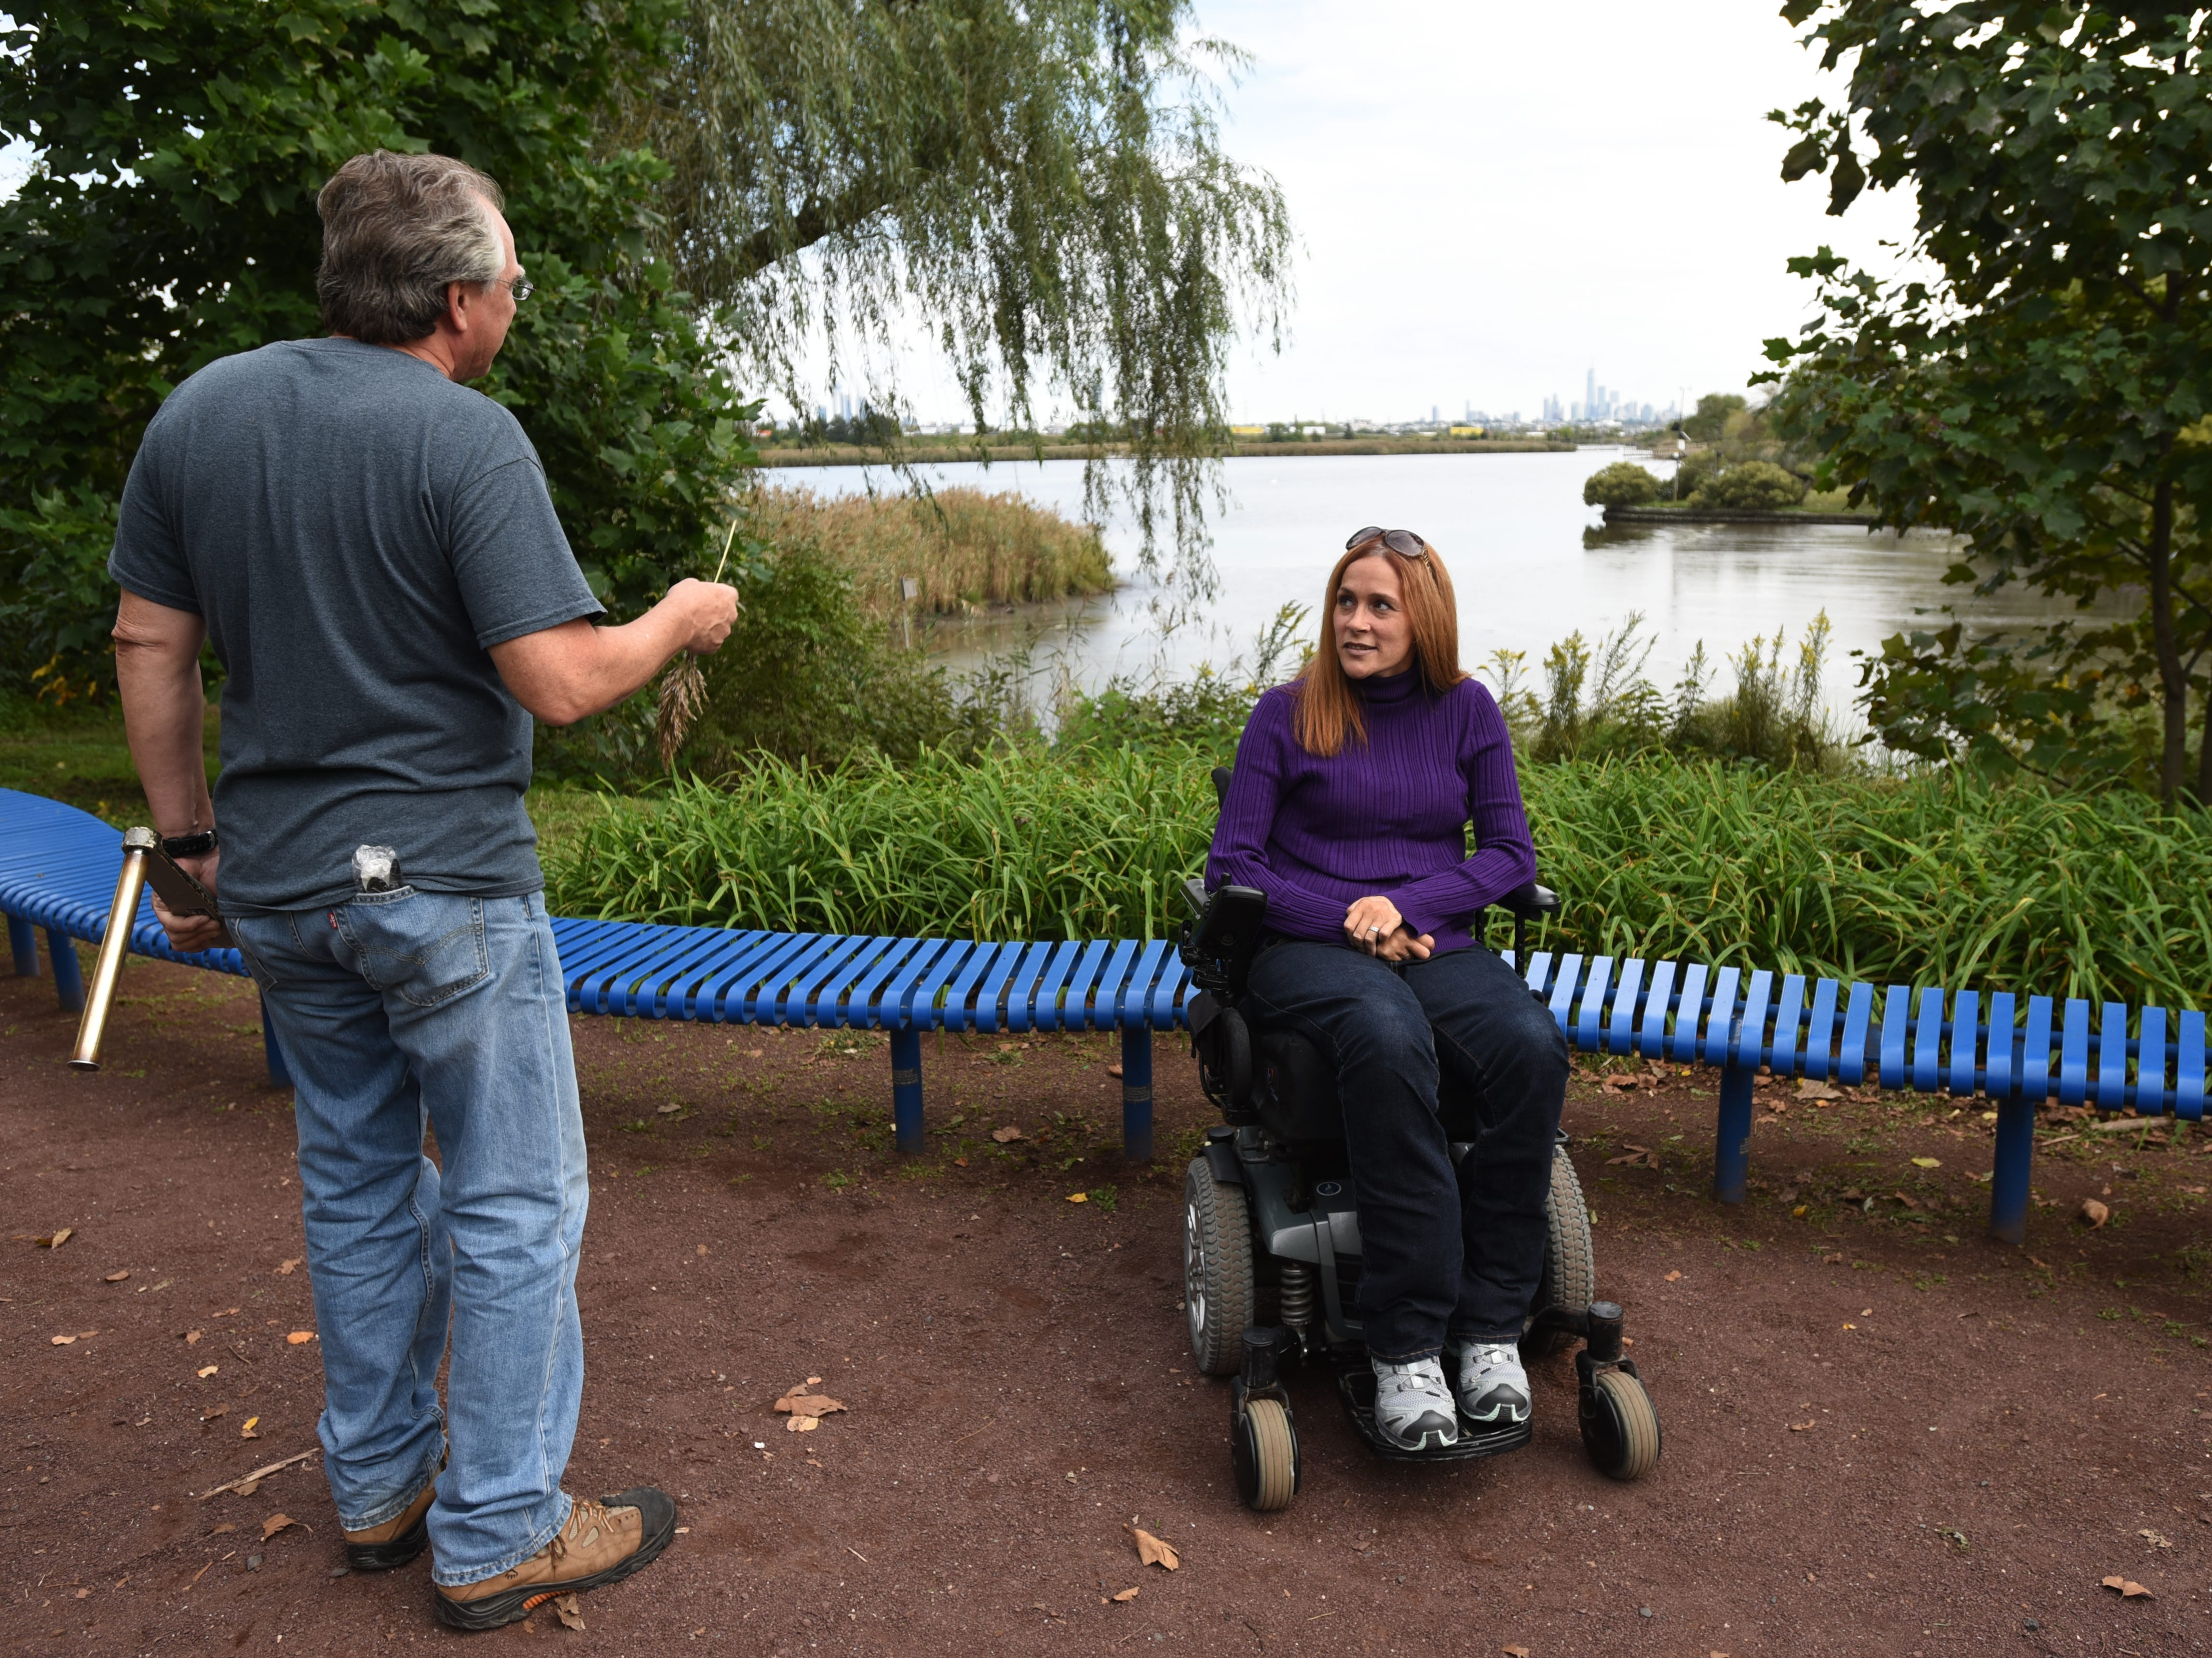 Michele Daly, Director of Disability Education at Meadowlands Environment Center and Ramapo College, talks to a colleague on one of the accessible trails at DeKorte Park. New Jersey's hiking options for those with limited mobility, includes DeKorte Park and its accessible trails in Lyndhurst shown on Friday October 5, 2018.